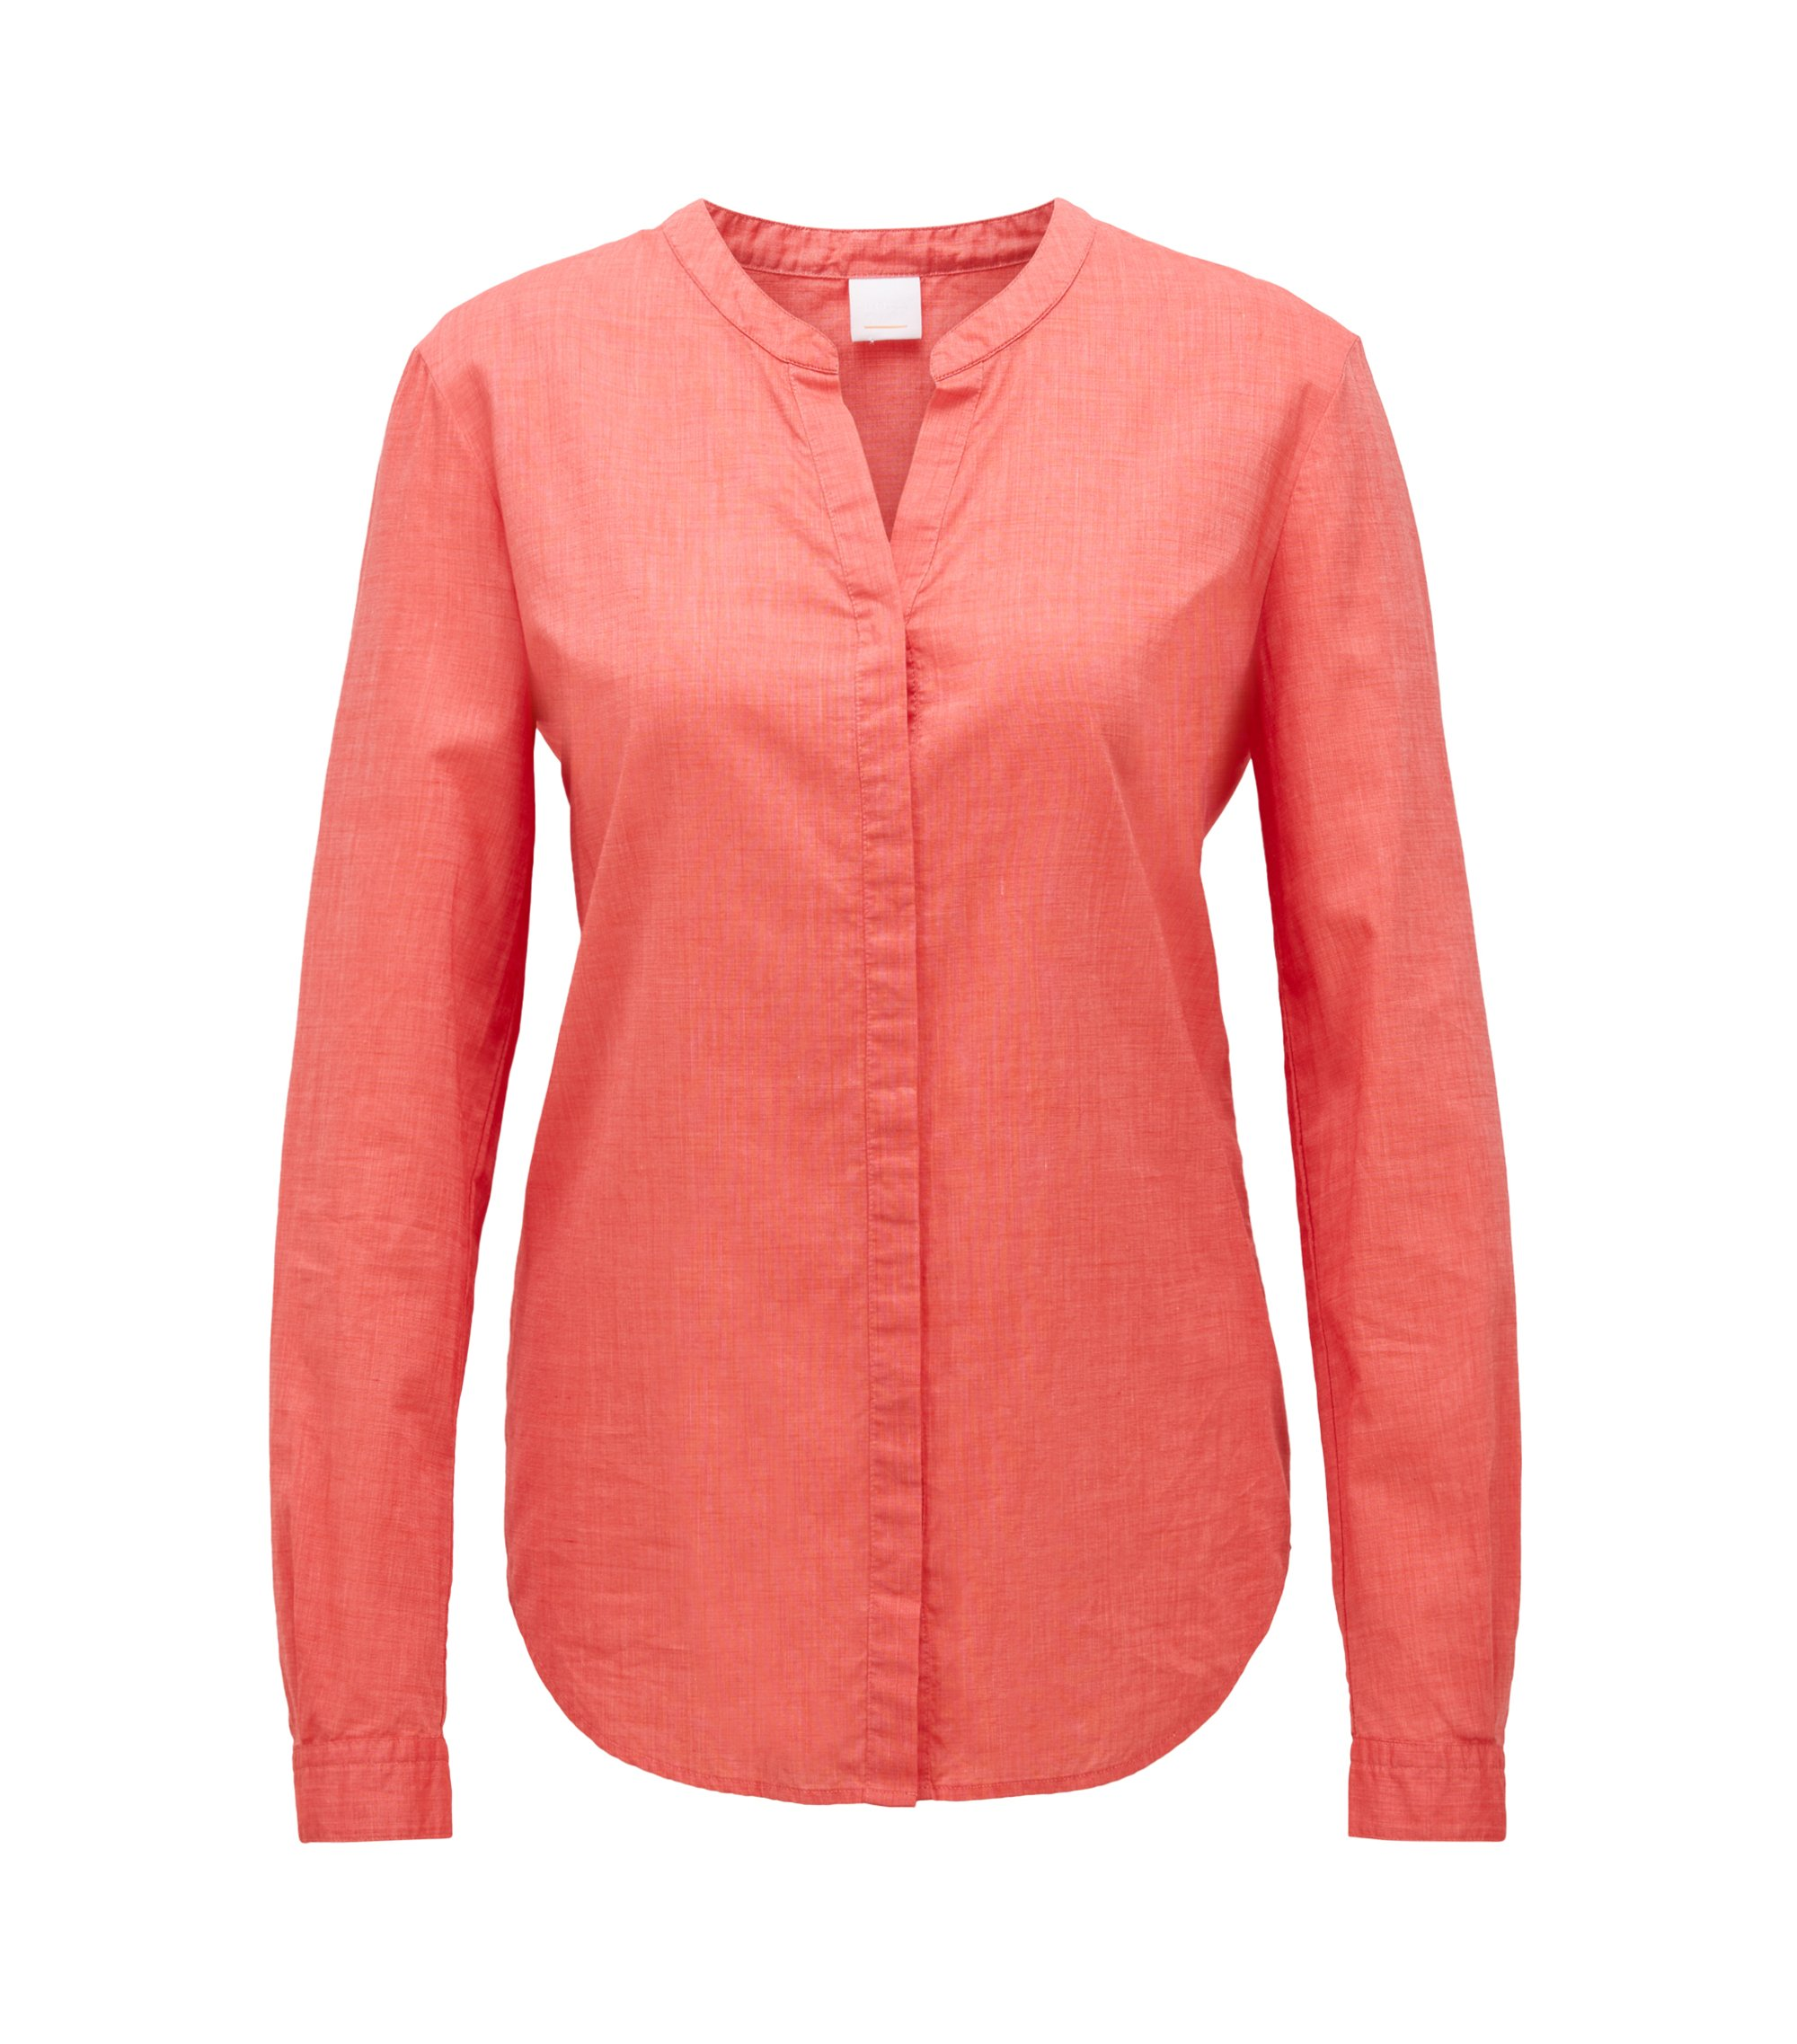 Chemisier Relaxed Fit en chambray de coton mélangé, Rouge